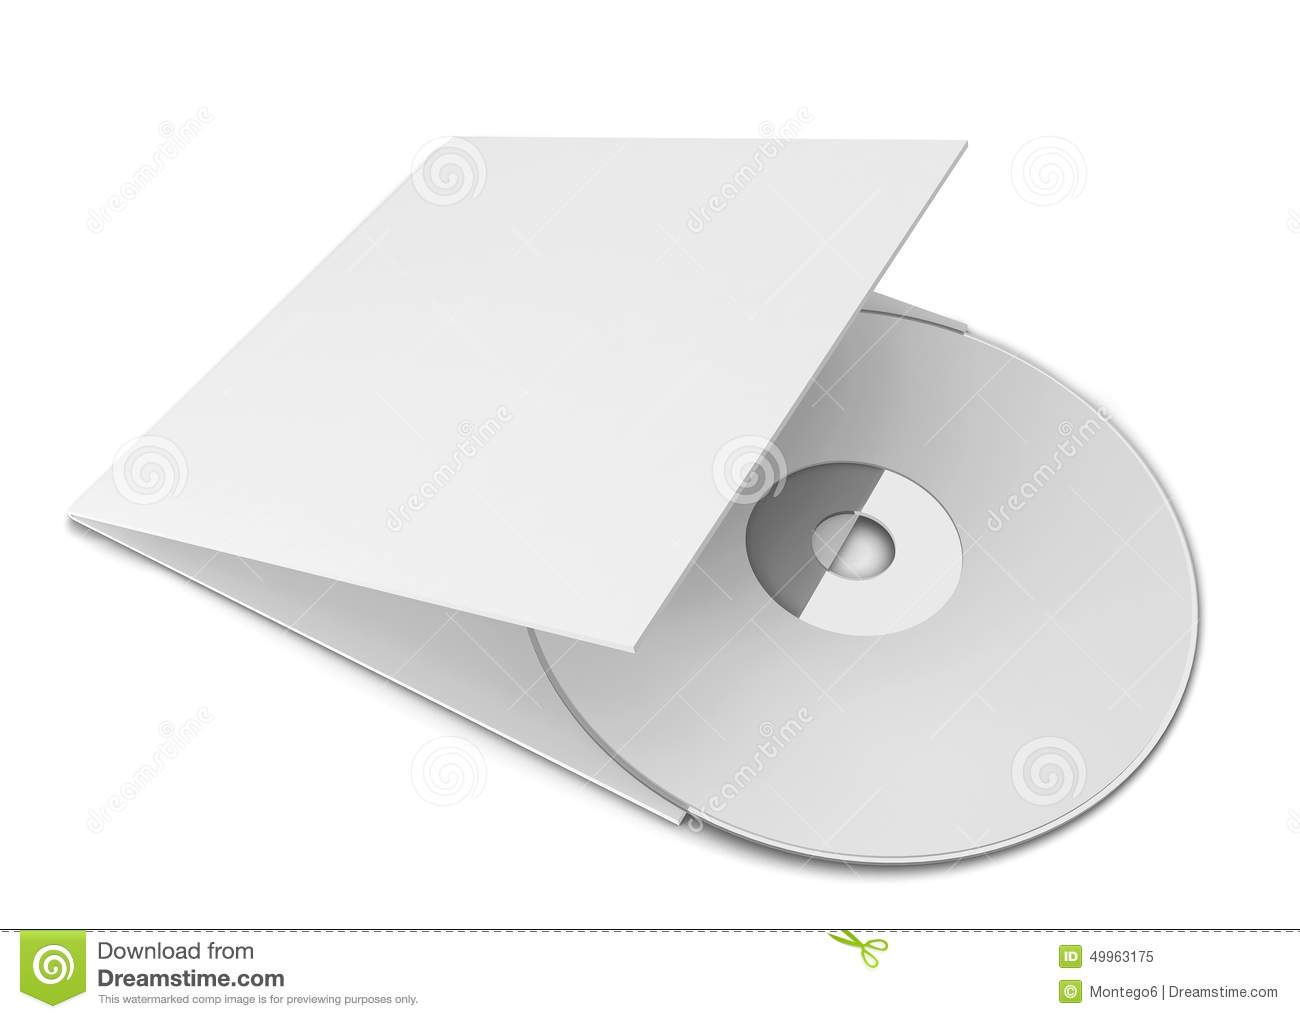 Cd cover clipart picture freeuse library Blank Cd Cover Stock Illustration - Image: 50253304 picture freeuse library